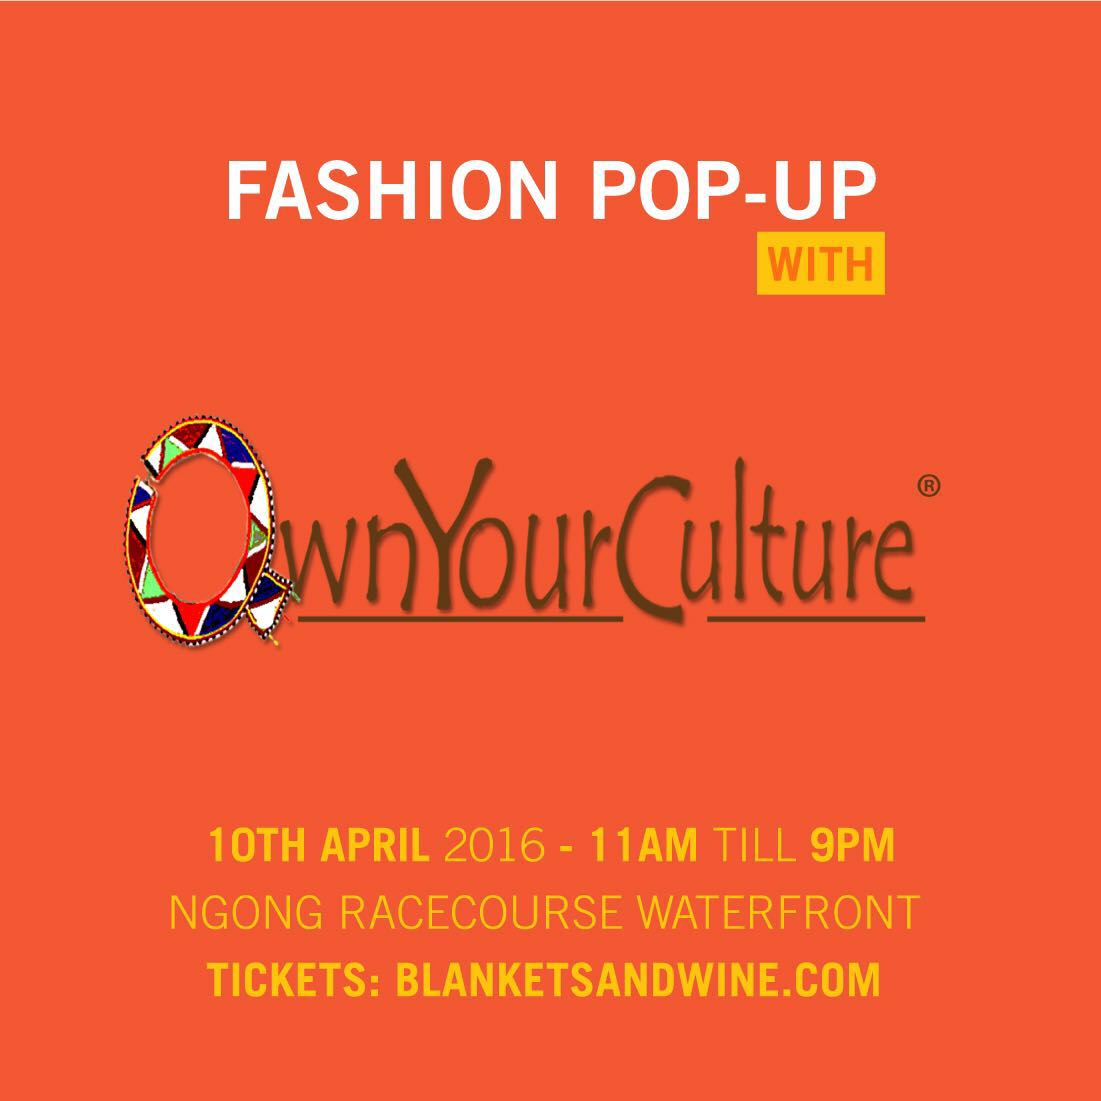 #OwnYourCulture for Blankets&Wine